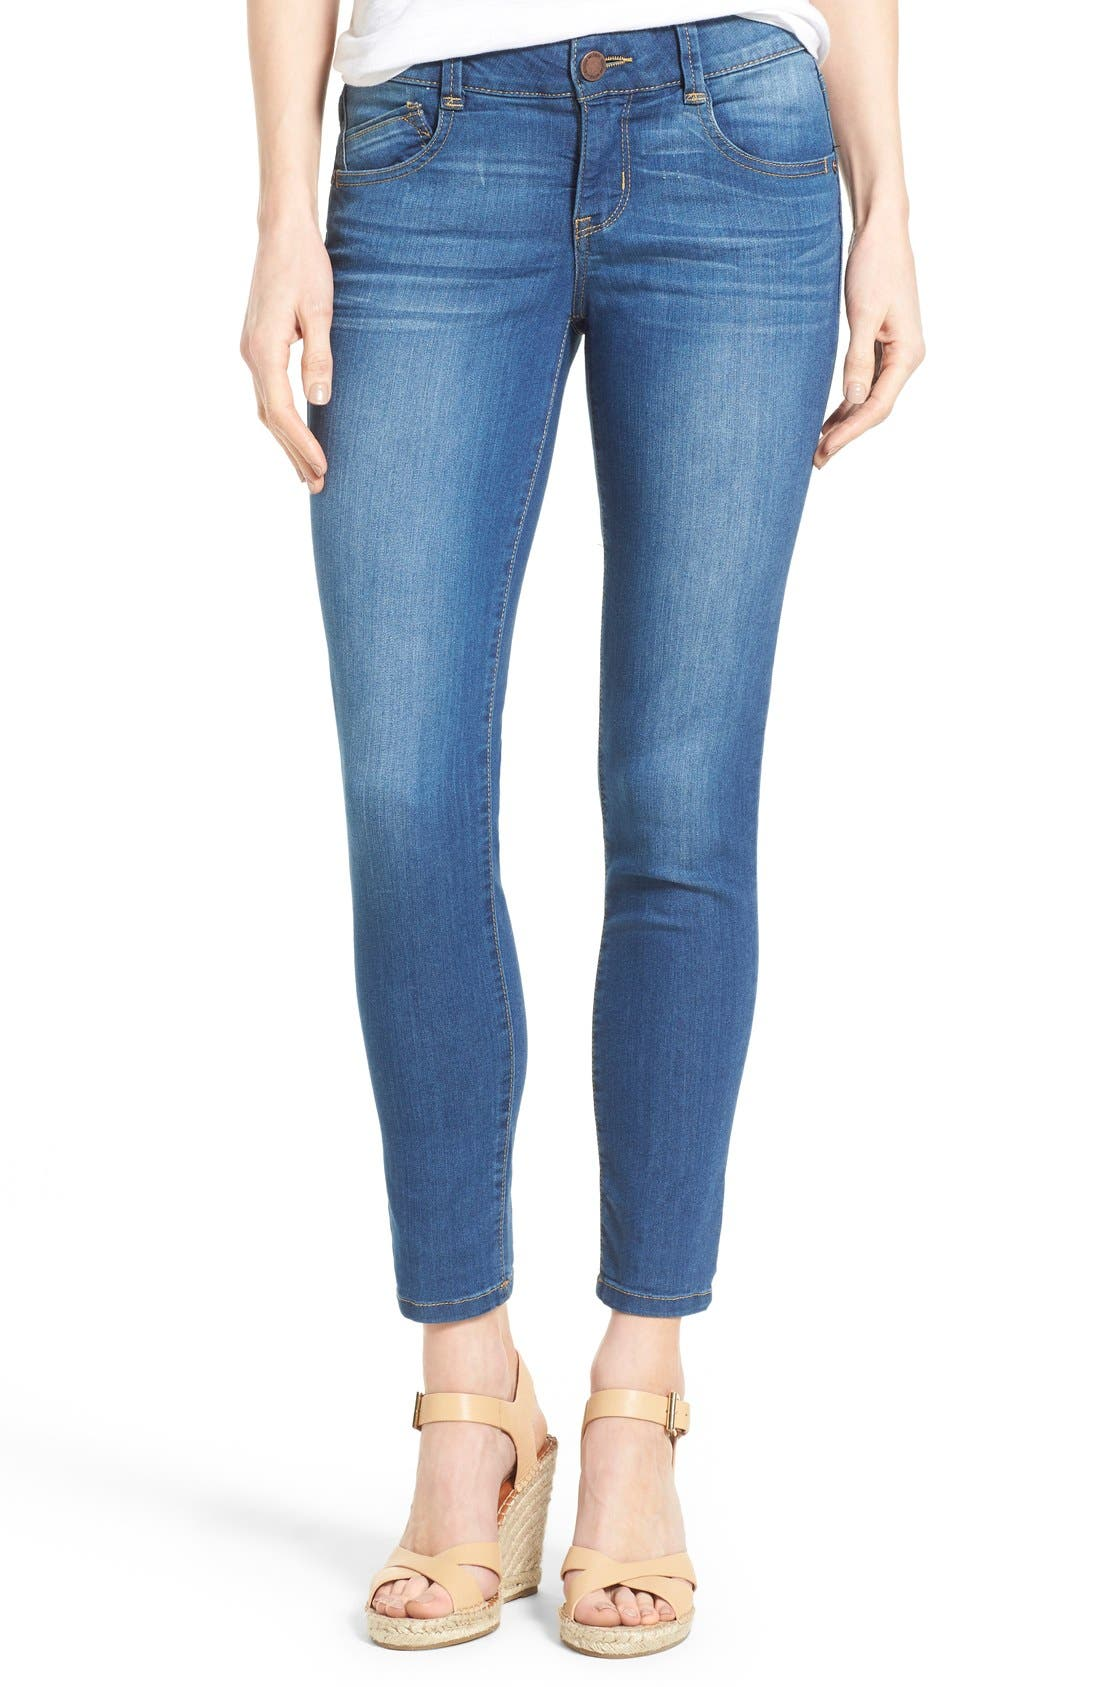 Main Image - Wit & Wisdom 'Ab-solution' Stretch Ankle Skinny Jeans (Regular & Petite) (Nordstrom Exclusive)